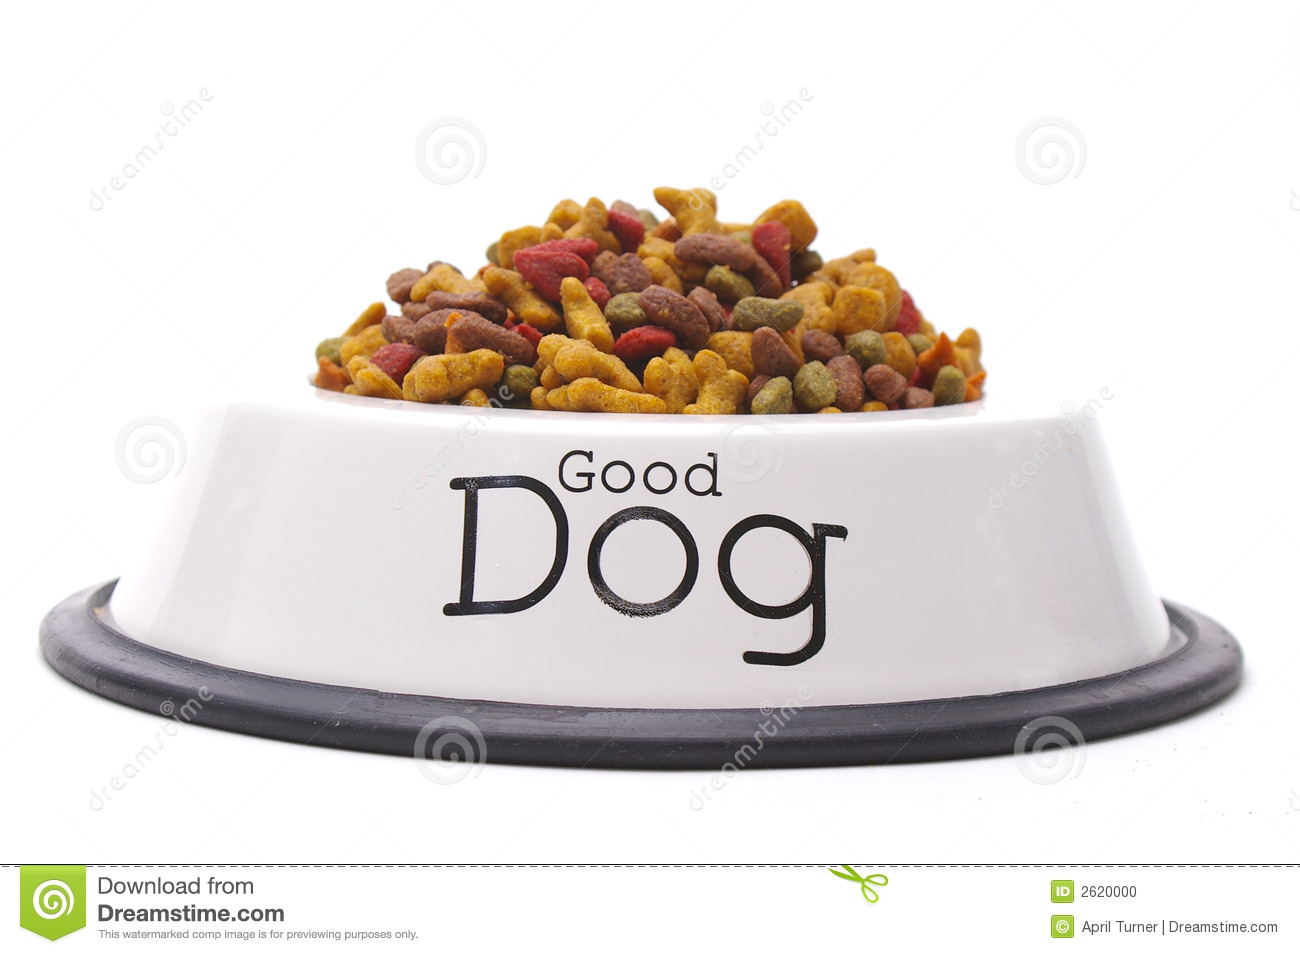 cheaper alternative blue buffalo dog food